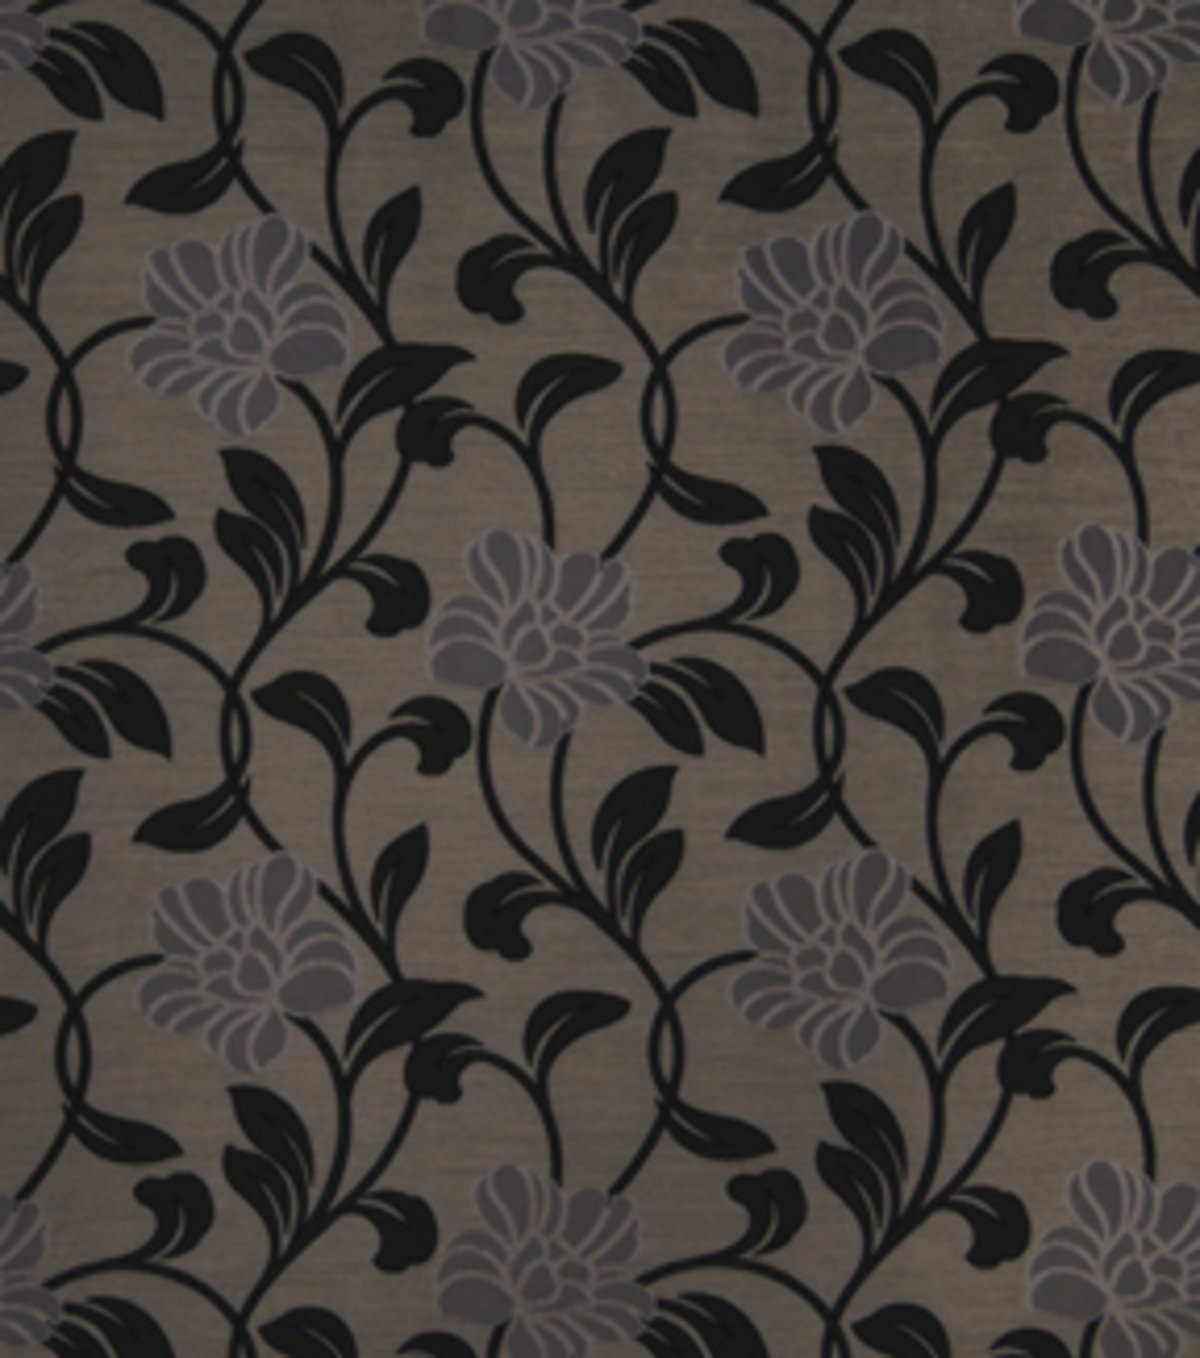 Home Decor 8\u0022x8\u0022 Fabric Swatch-Print Fabric Eaton Square Lloyd Silver